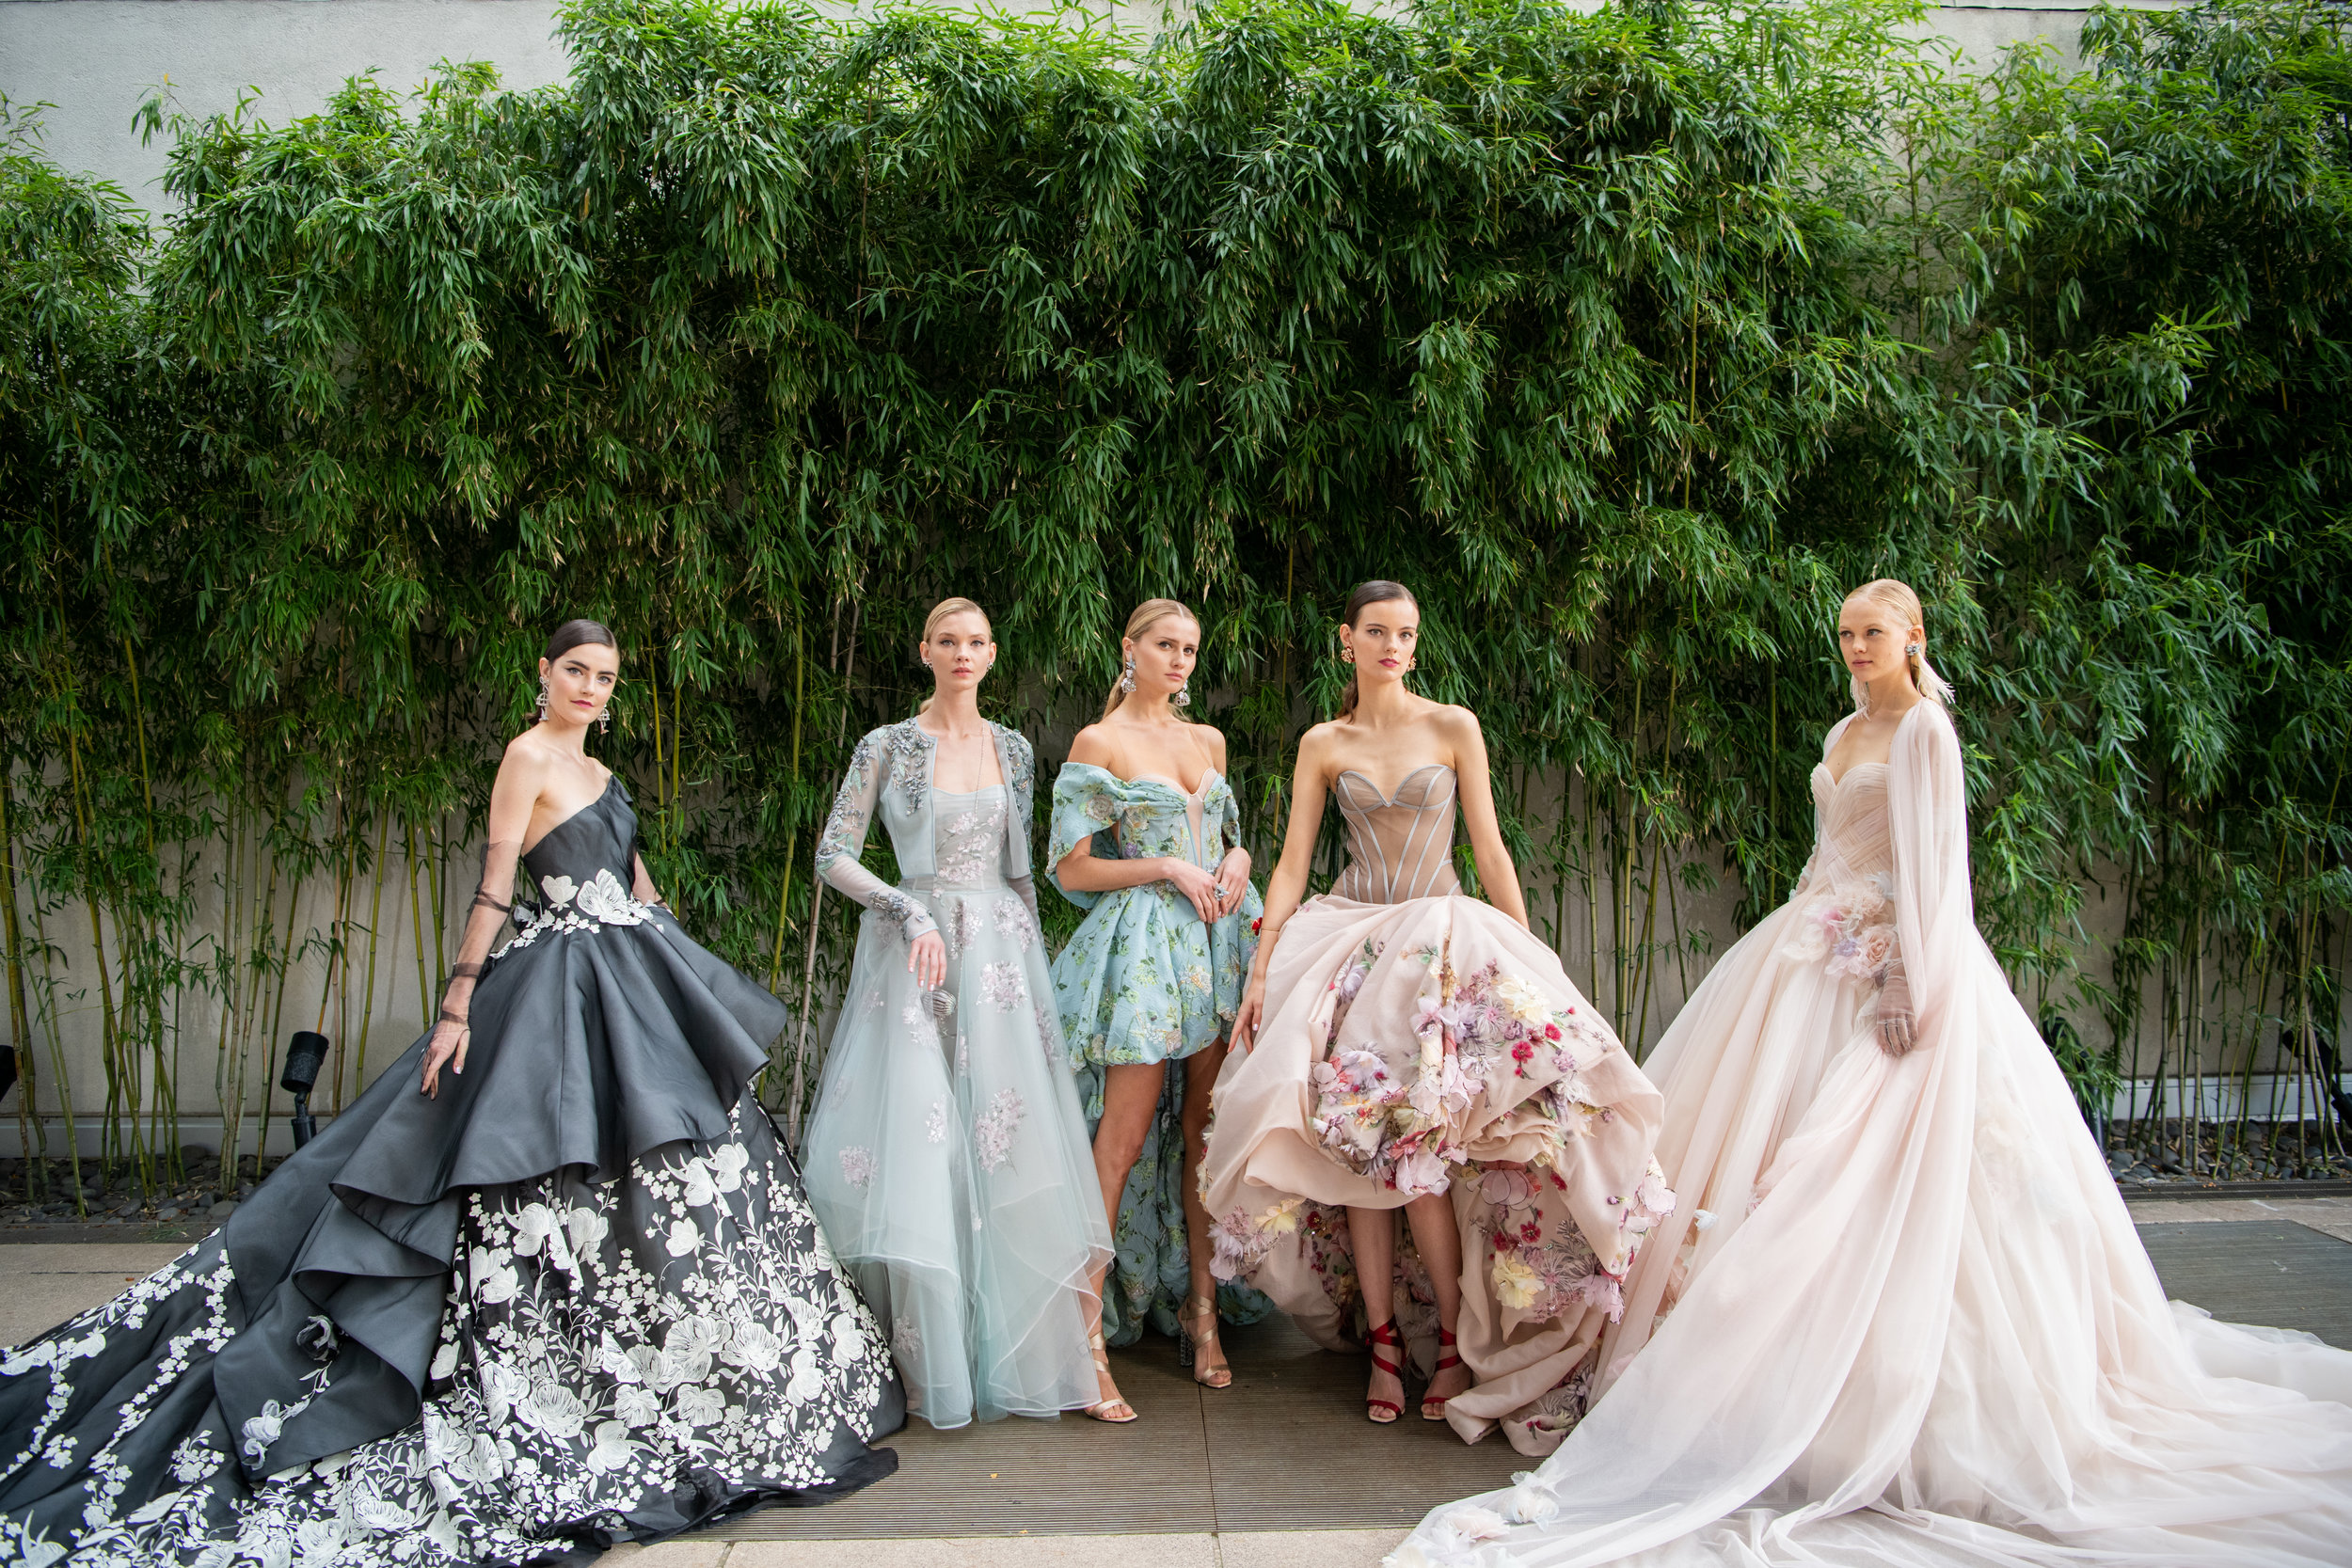 The Fall 2019 Ines Di Santo collection during Bridal Fashion Week. Photographed by Kathy Thomas Photography